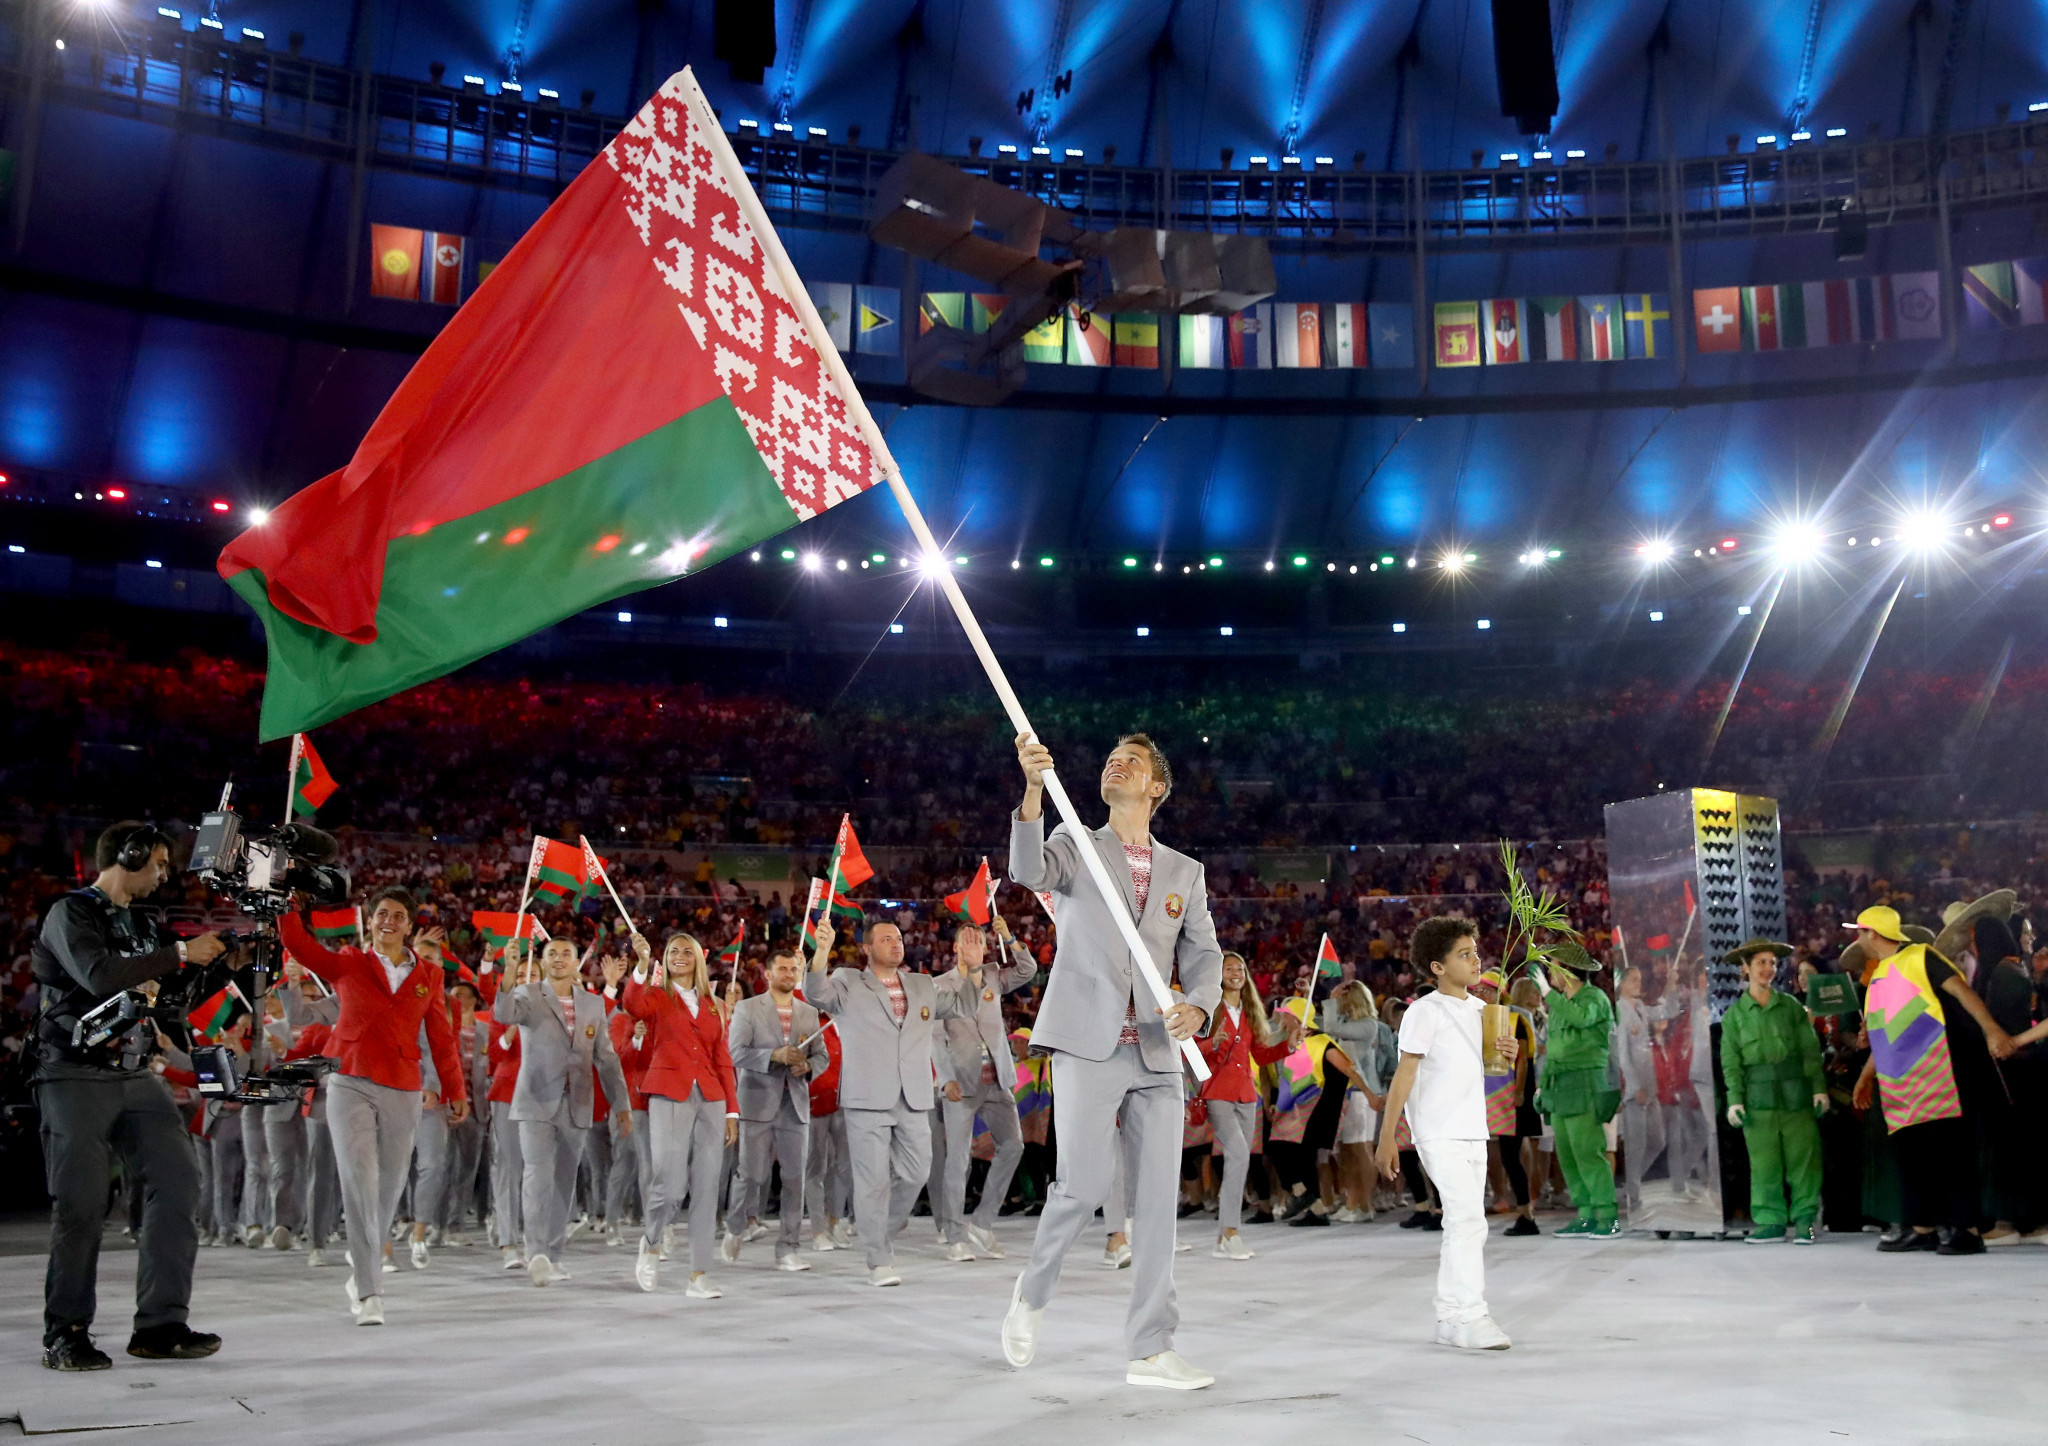 Forcing Belarus to compete under a neutral flag remains an option for the IOC should it choose to enforce further sanctions ©Getty Images